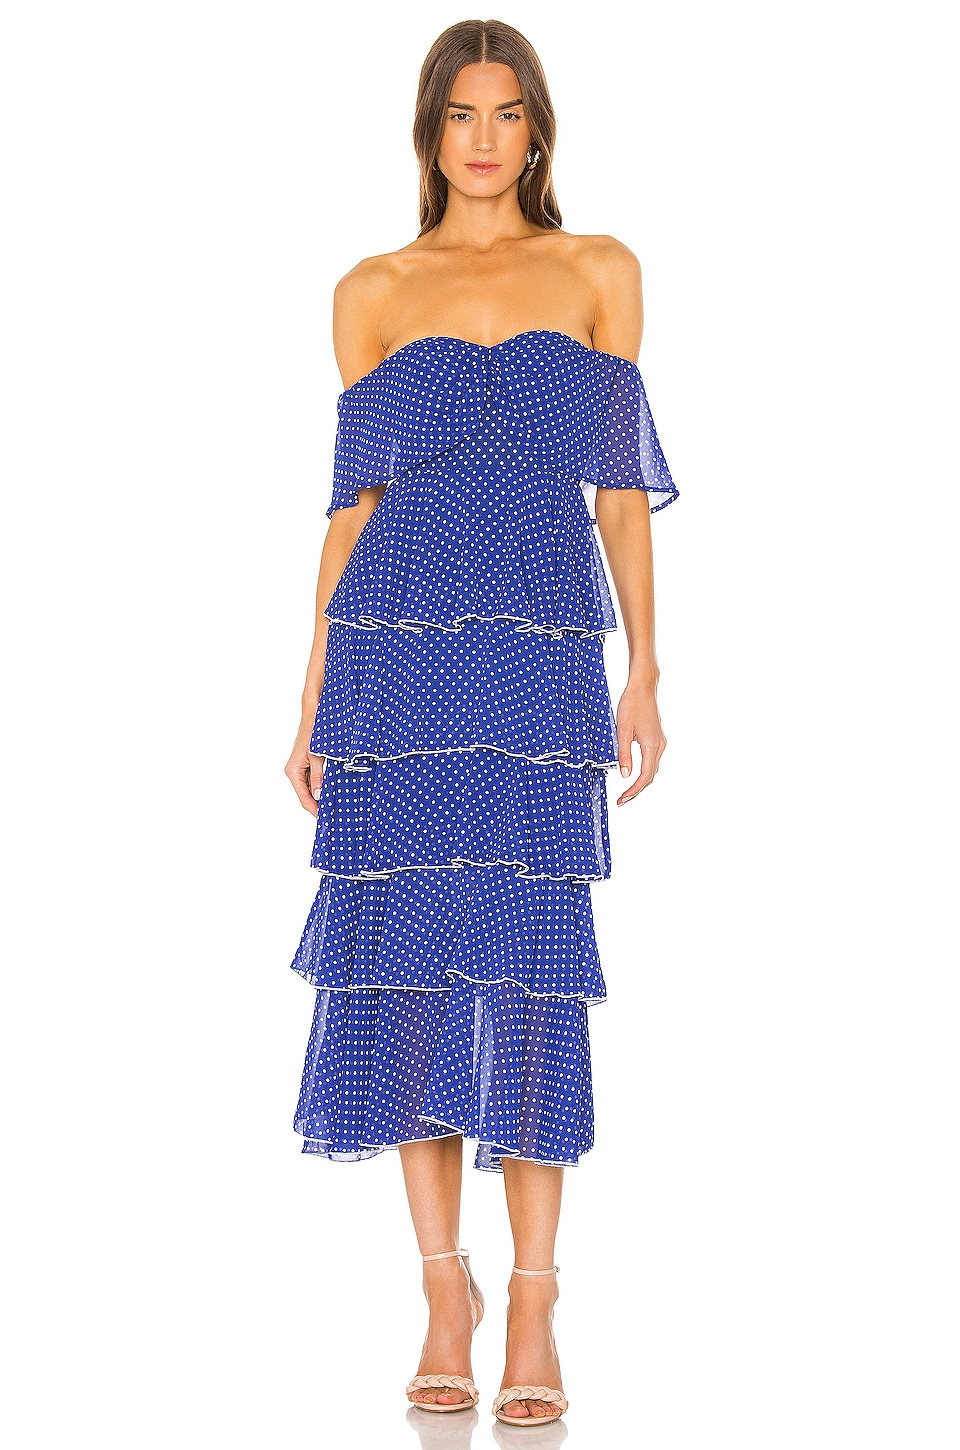 Lovers + Friends Highland Midi Dress in Navy Polka Dot